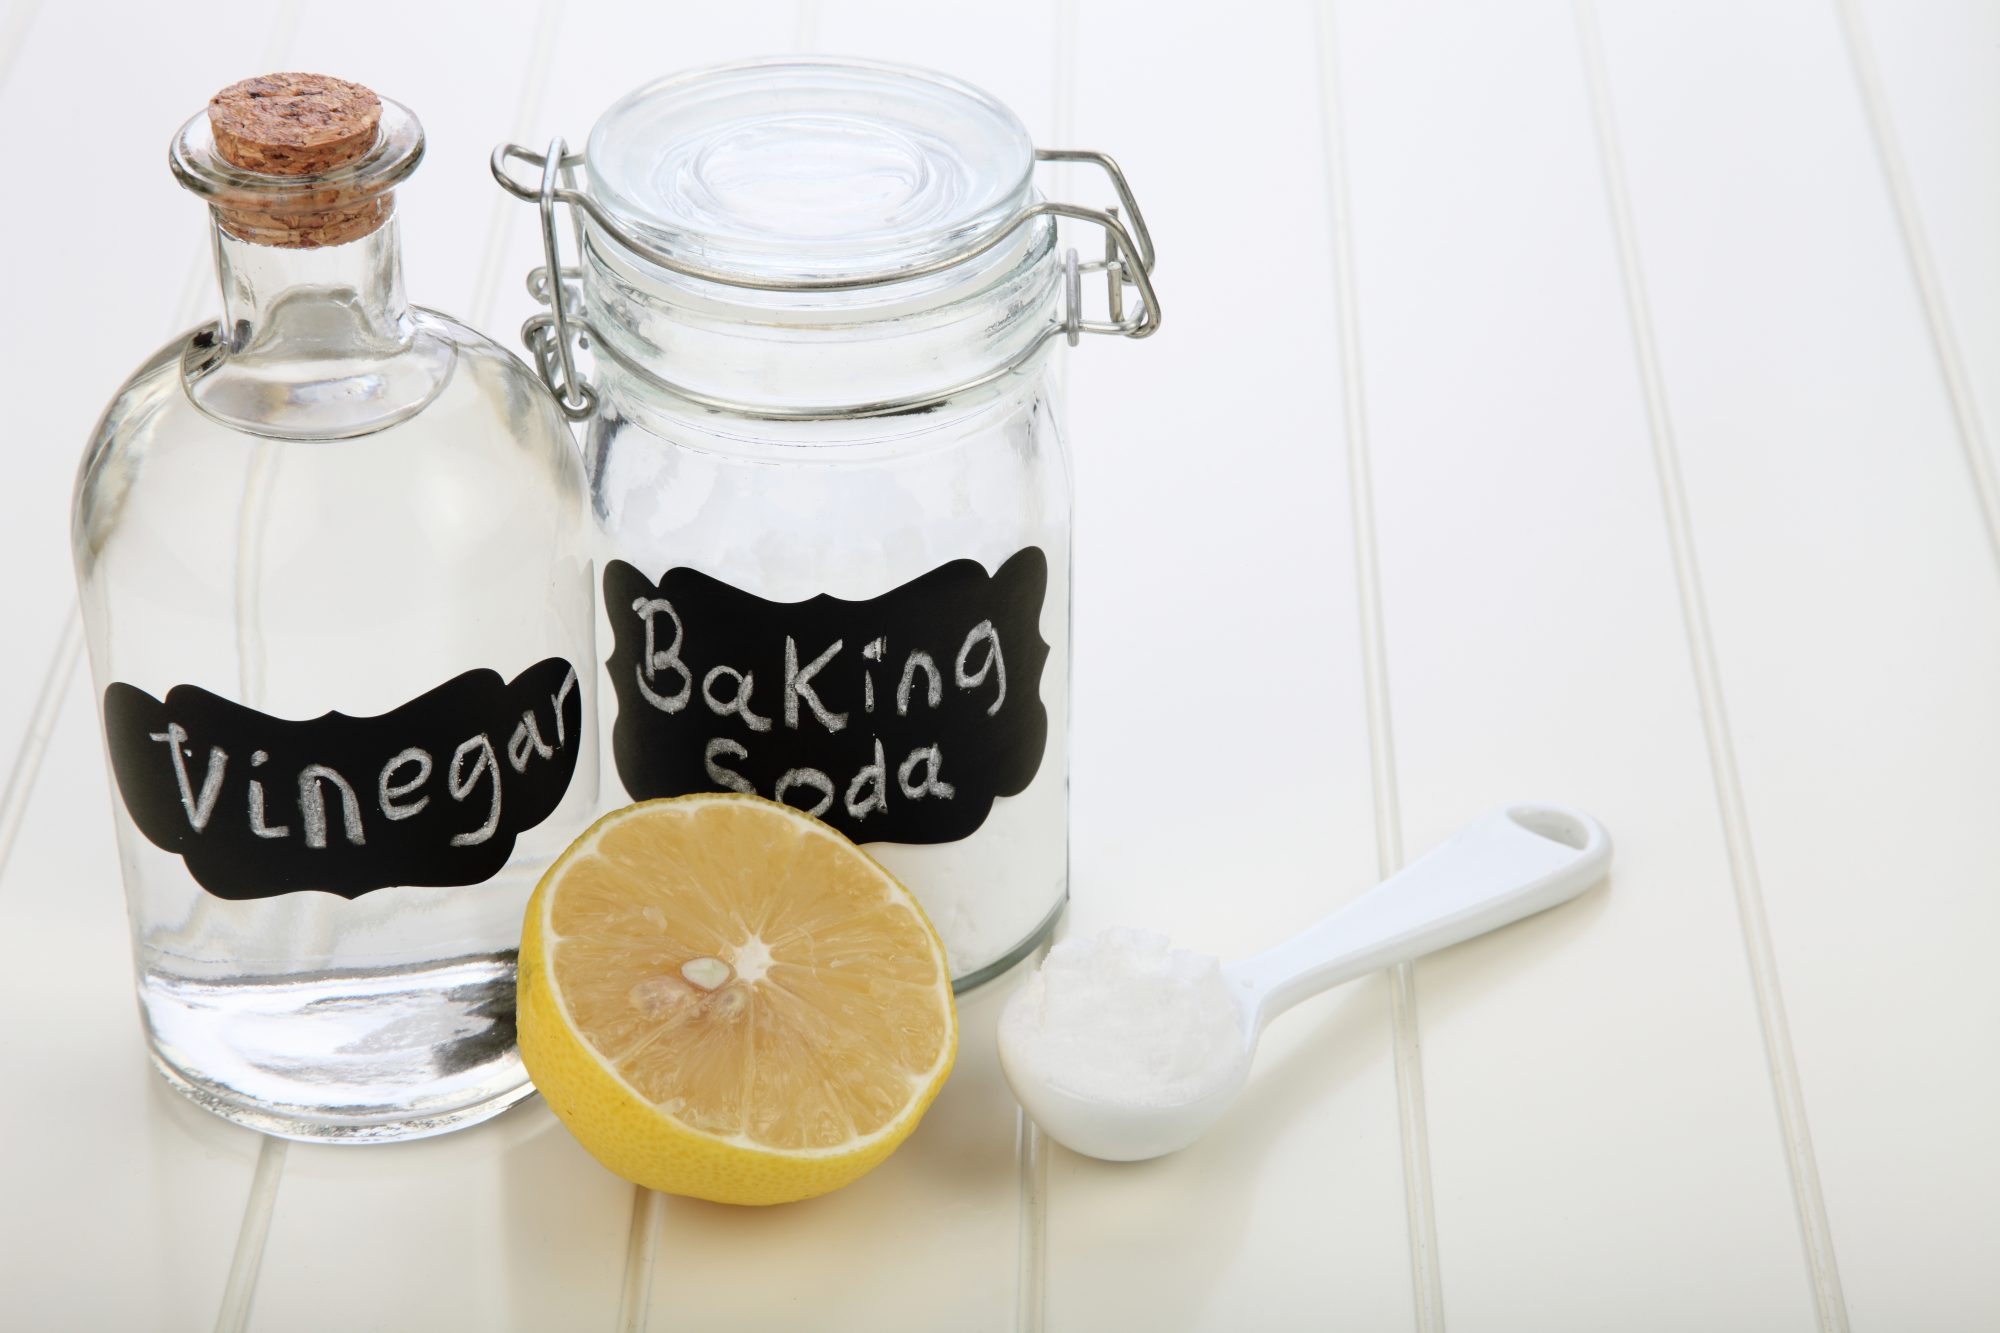 vinegar and baking soda next to lemon and measuring spoon